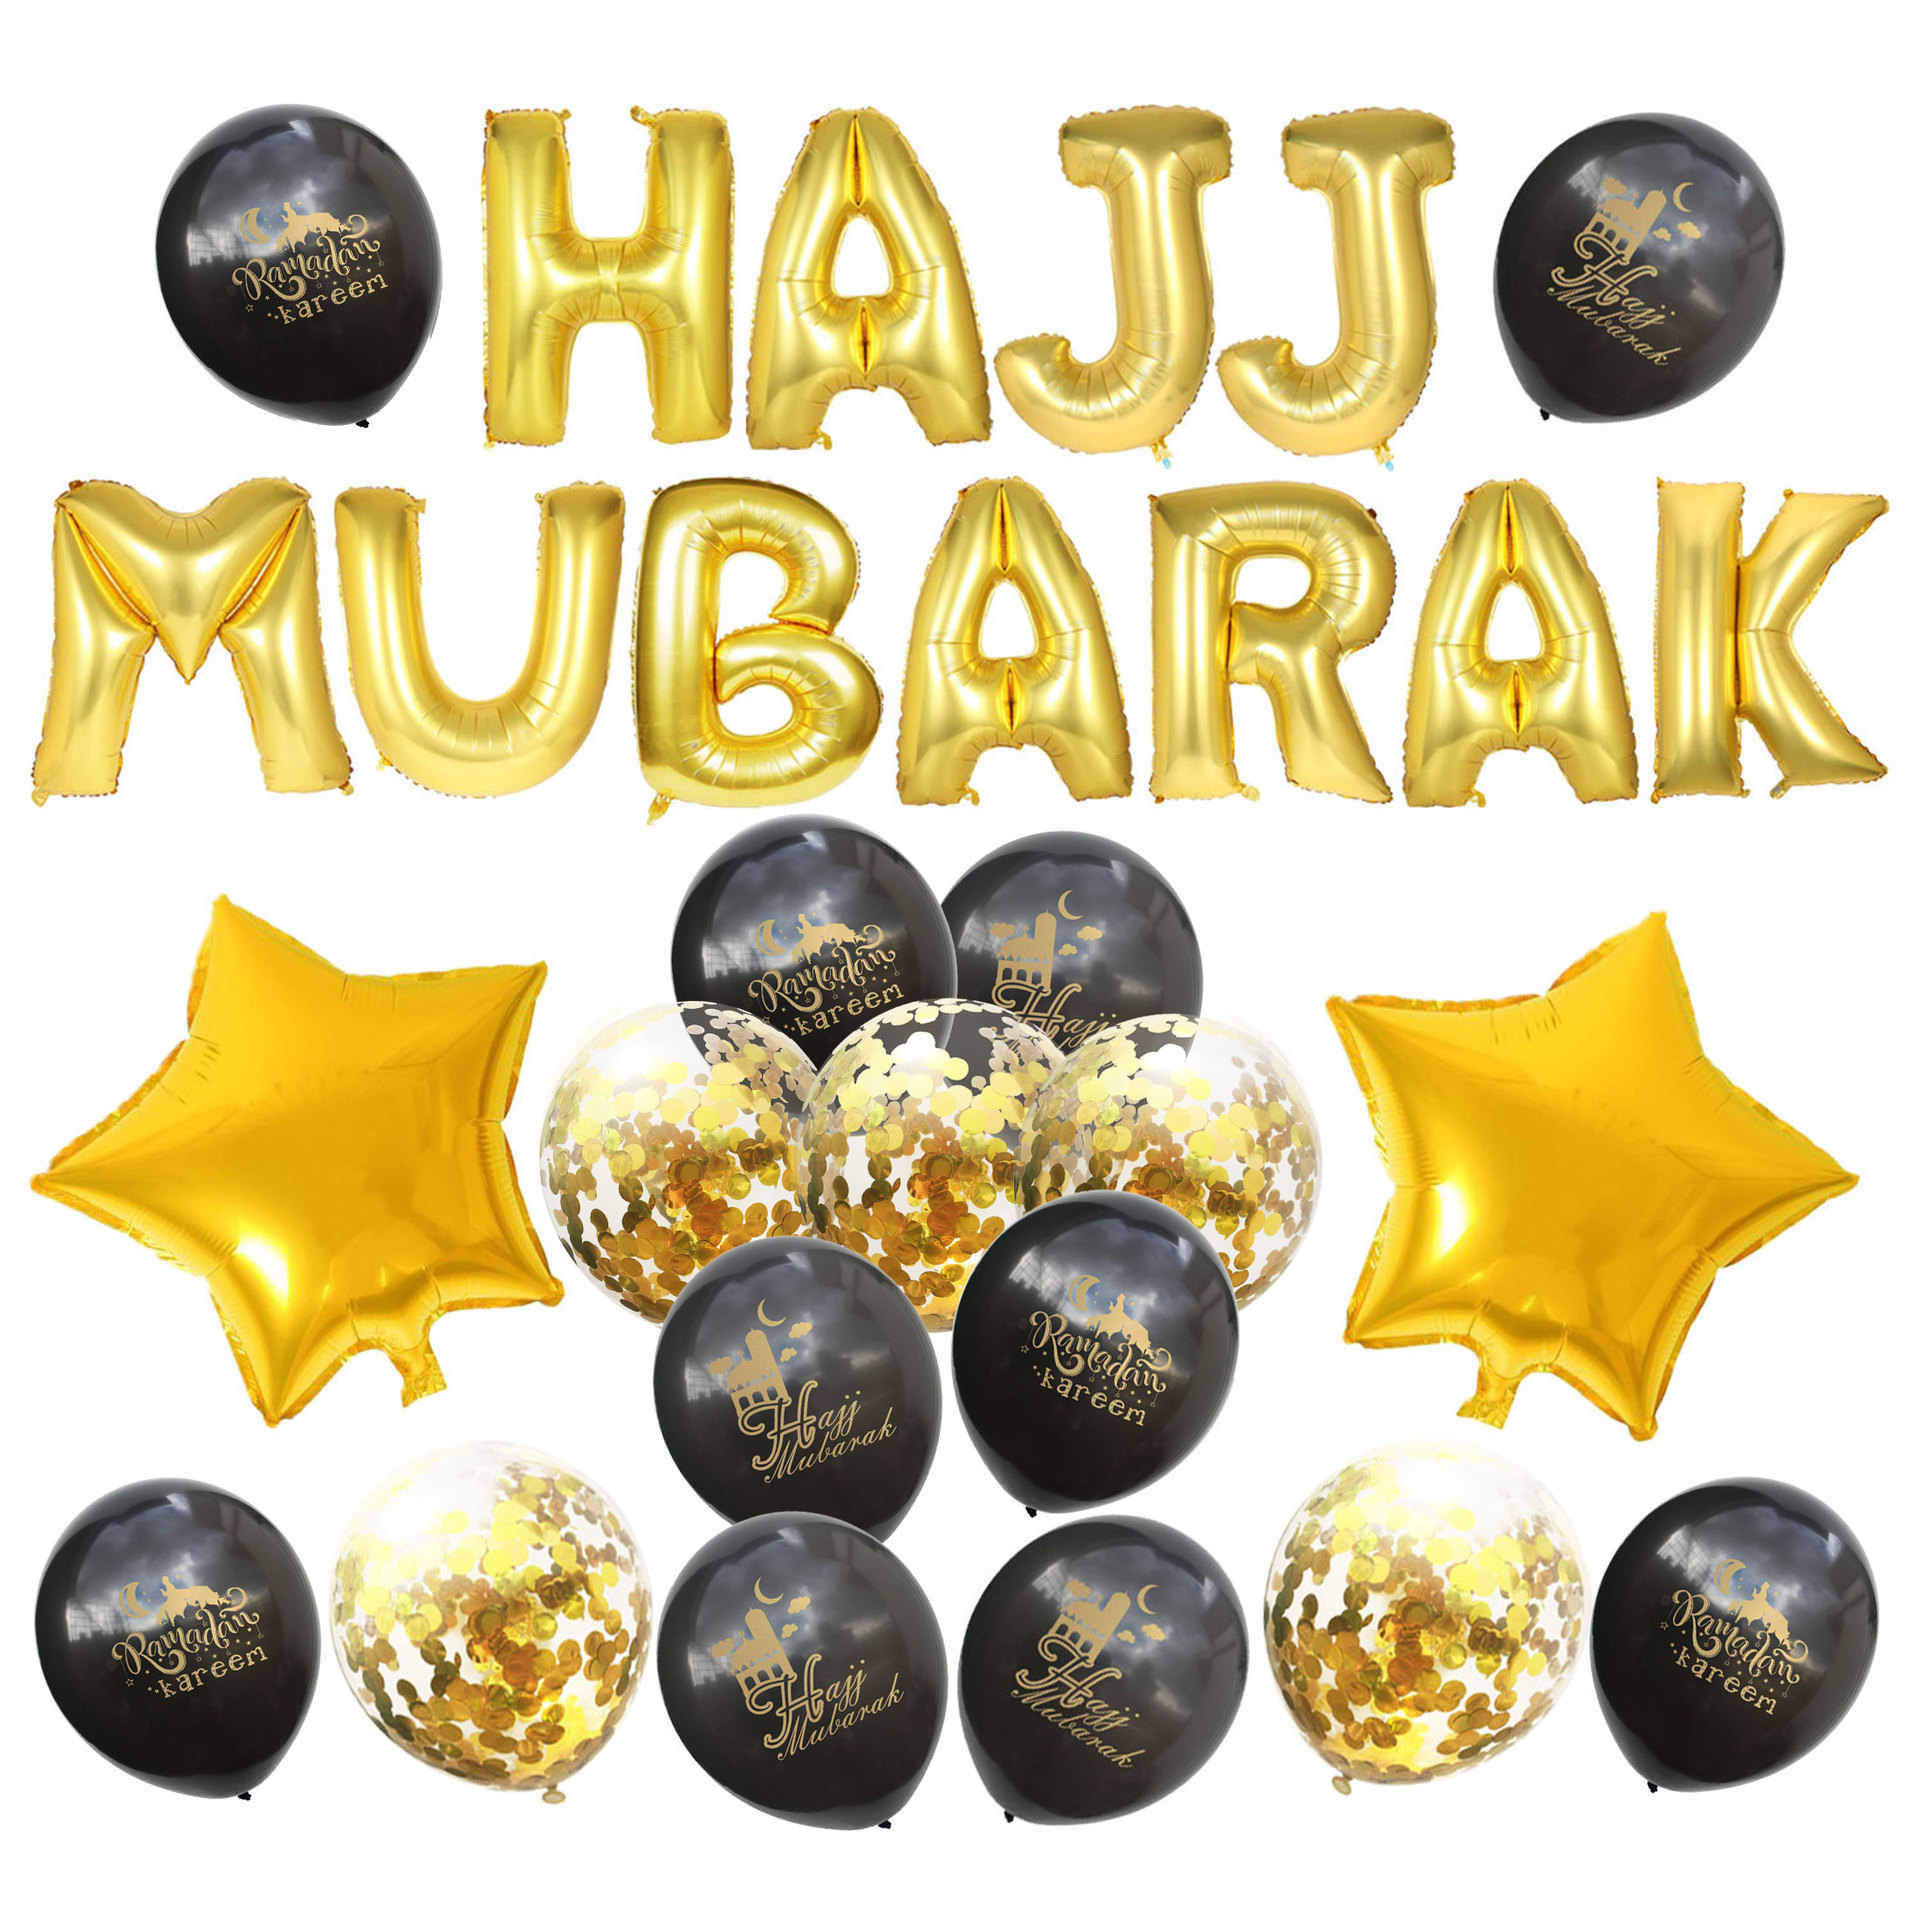 2019 Eid Mubarak Party Balloons Set Happy Ramadan Kareem Helium Balloon Decoration Ramadan Hajj Mubarak Muslim Event Party Decor